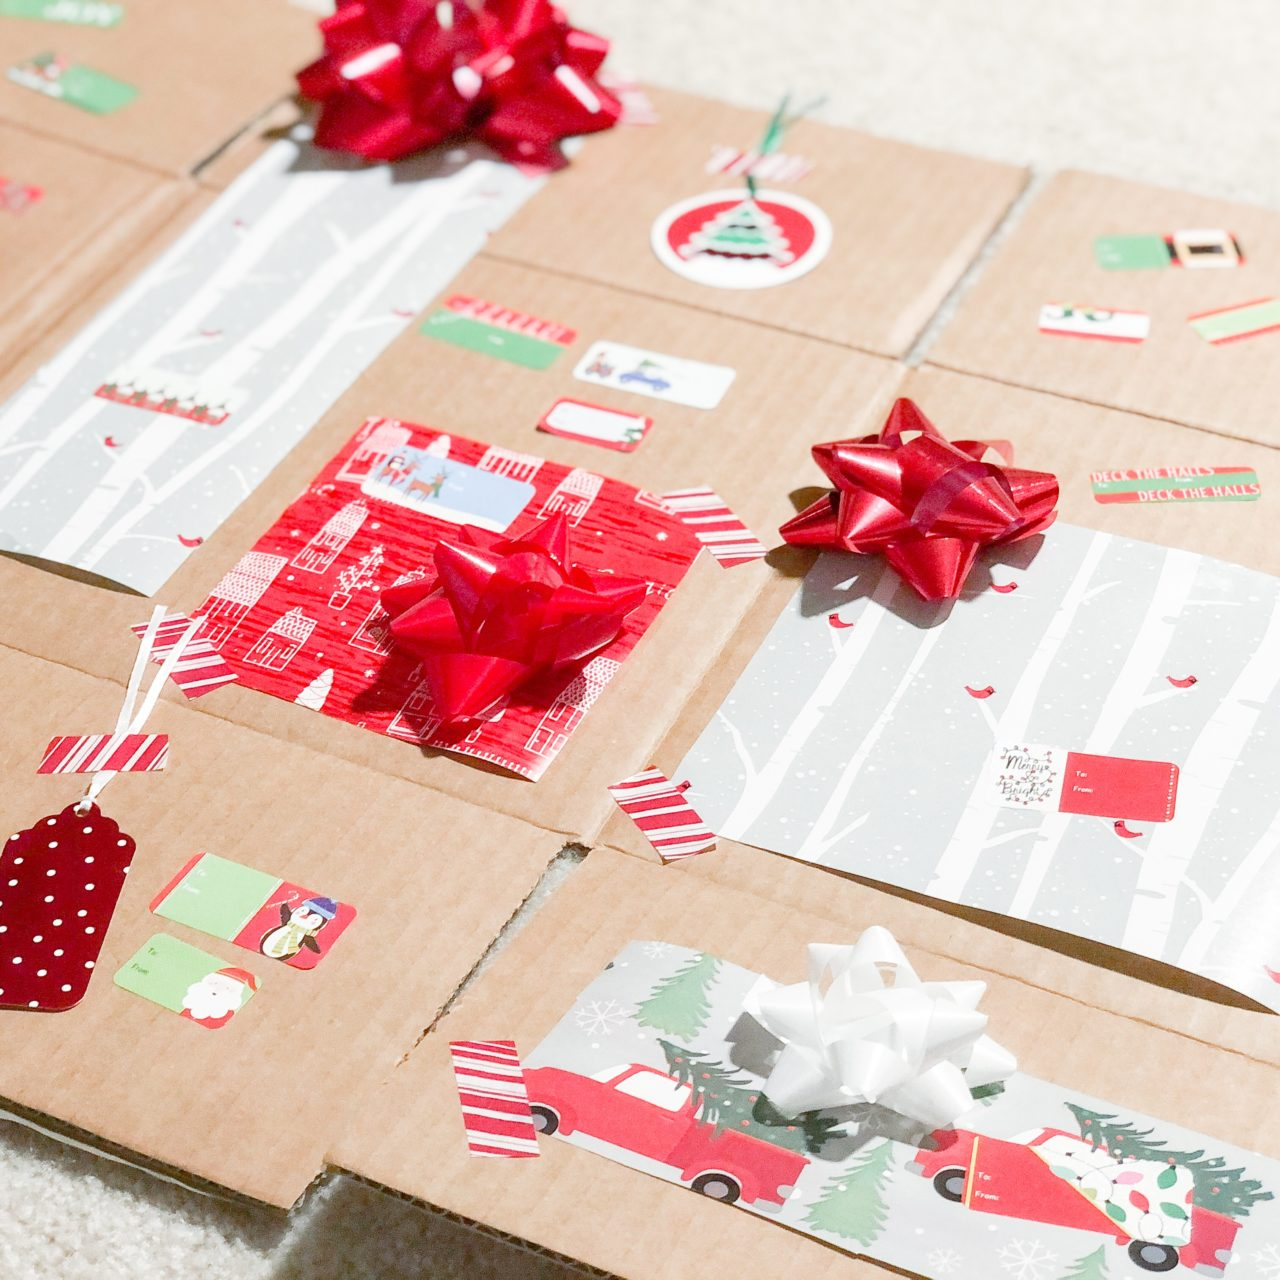 Wrapping Paper Activity Board